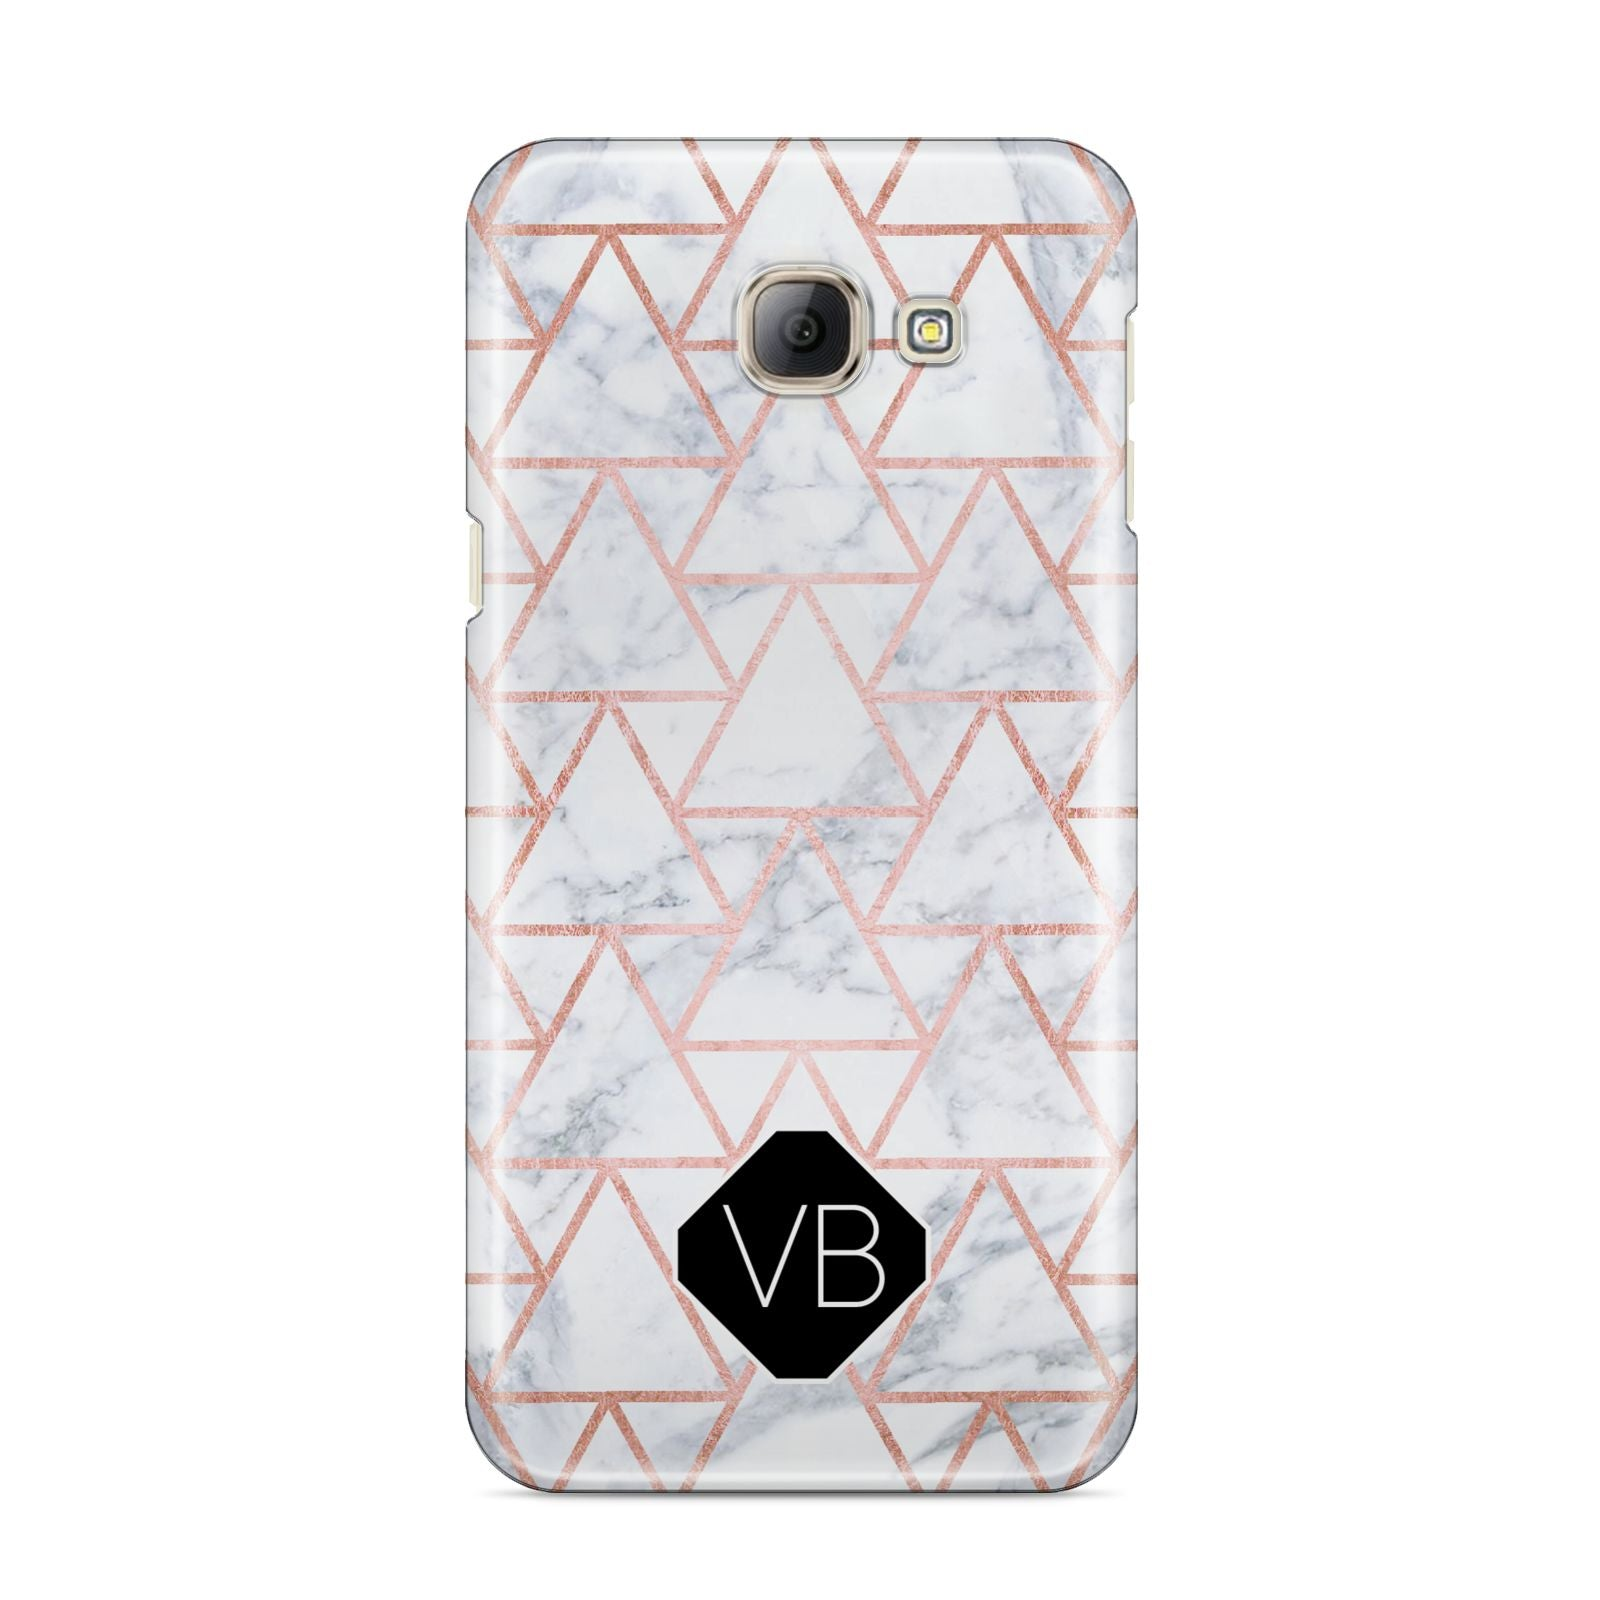 Personalised Rose Gold Grey Marble Hexagon Samsung Galaxy A8 2016 Case